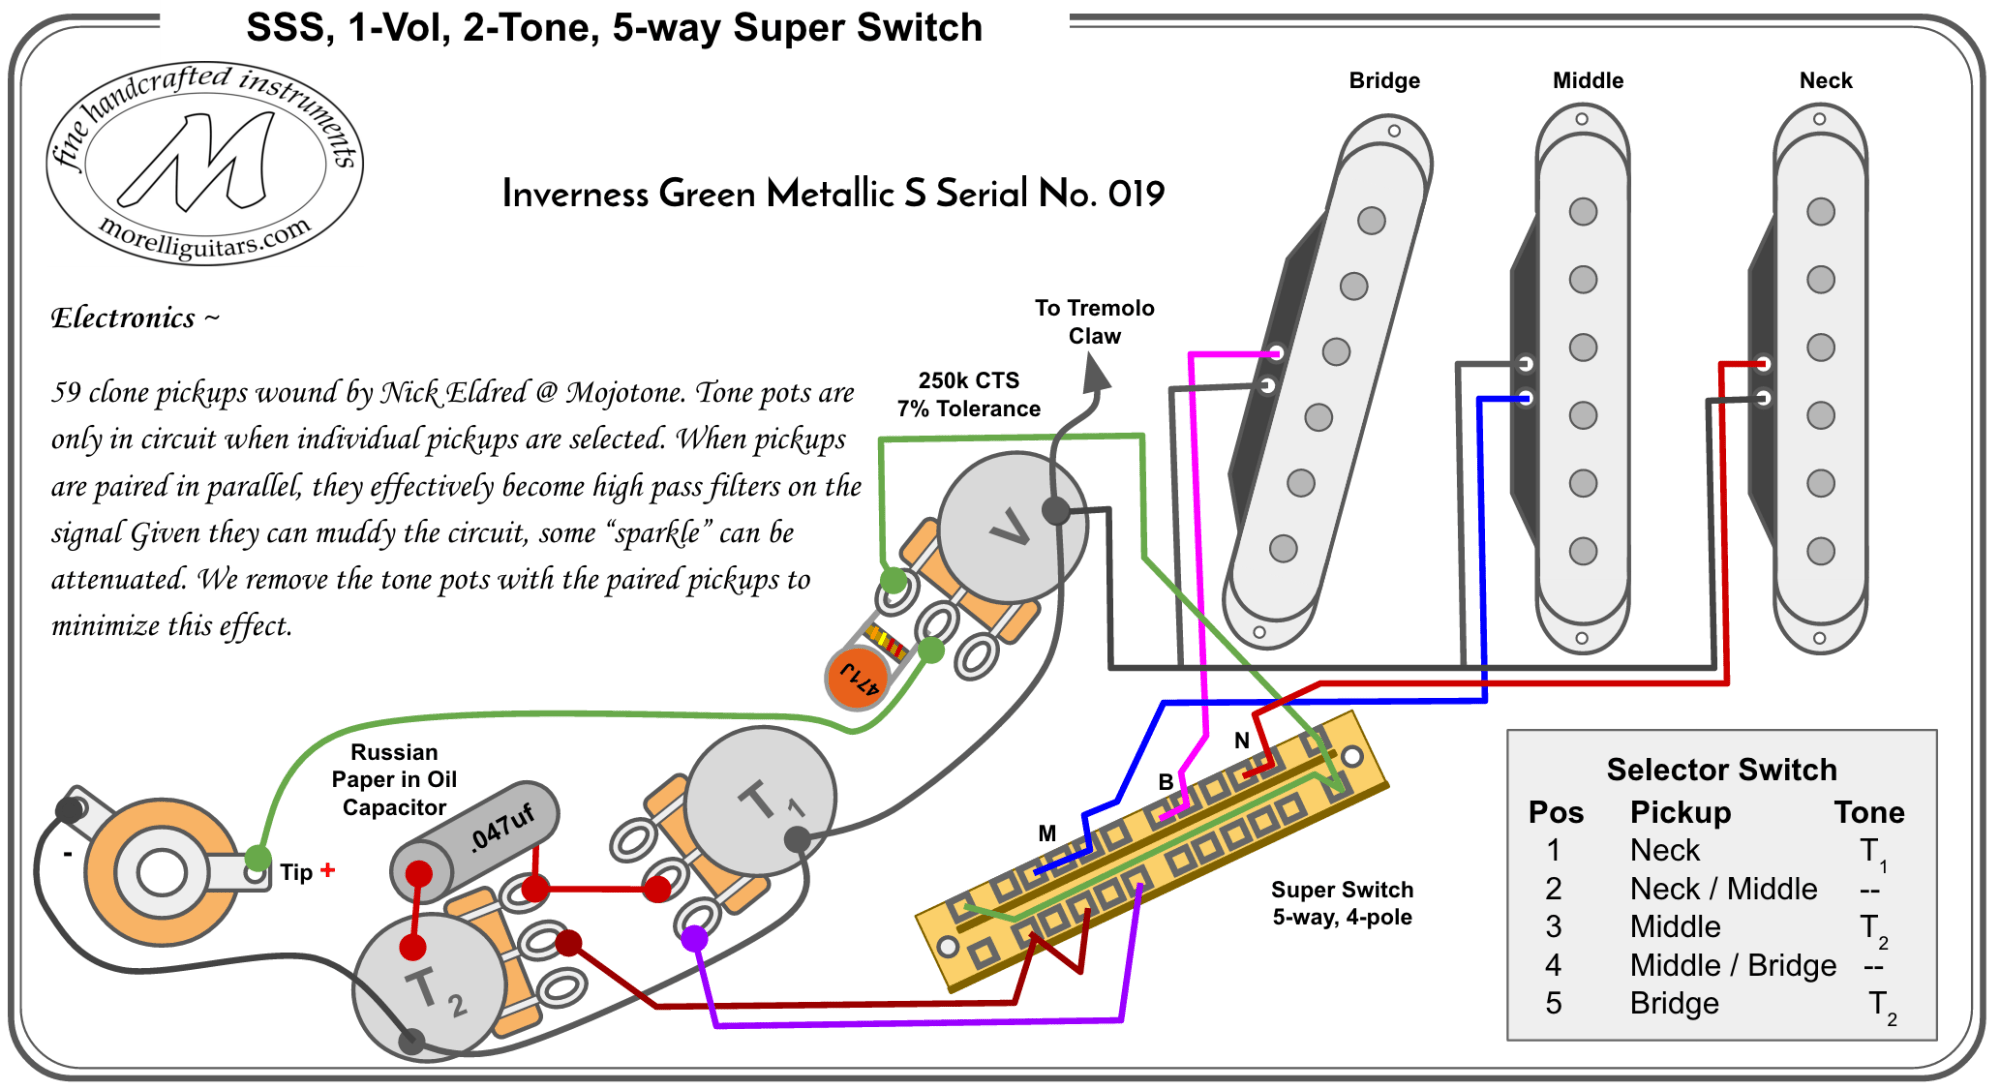 hight resolution of sss 1 vol 2 tone 5 way super switch fmm 019 morellidownload wiring